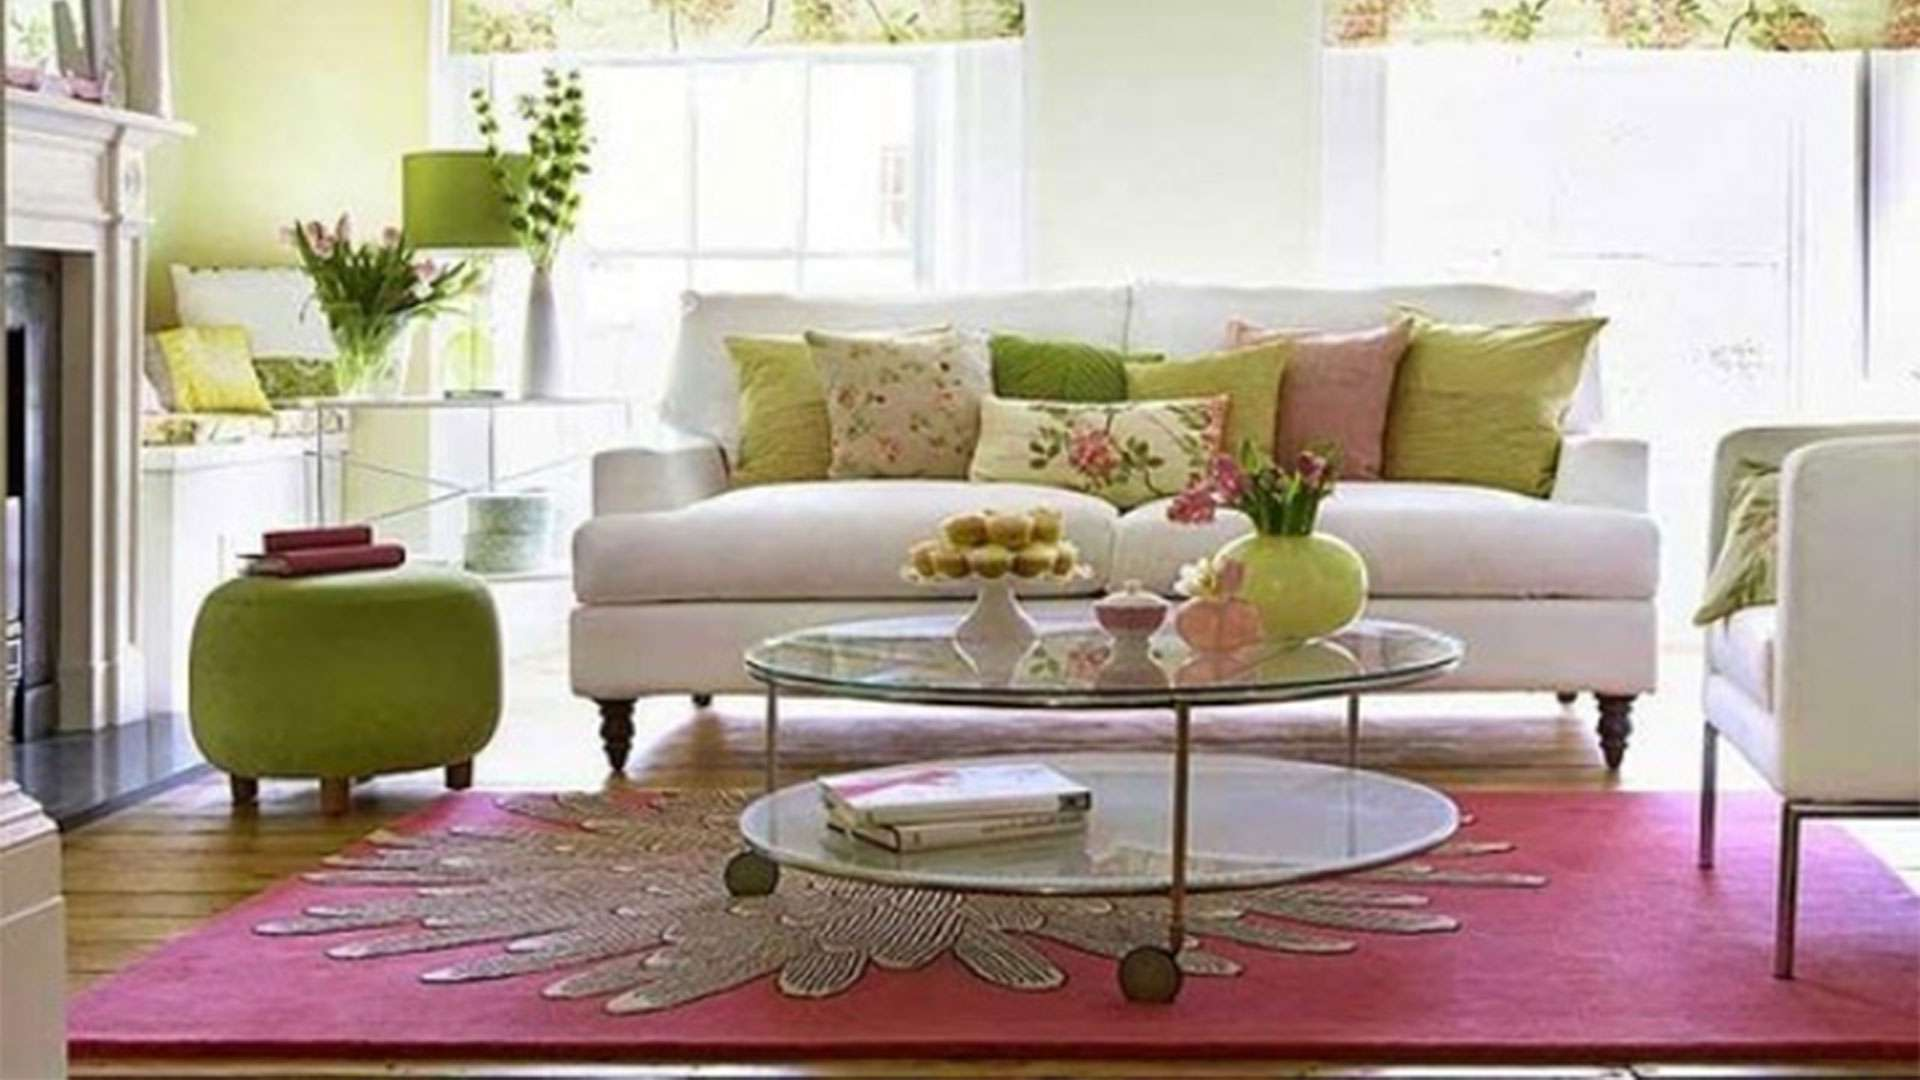 Rooms Get Spring Decorating Ideas Colors